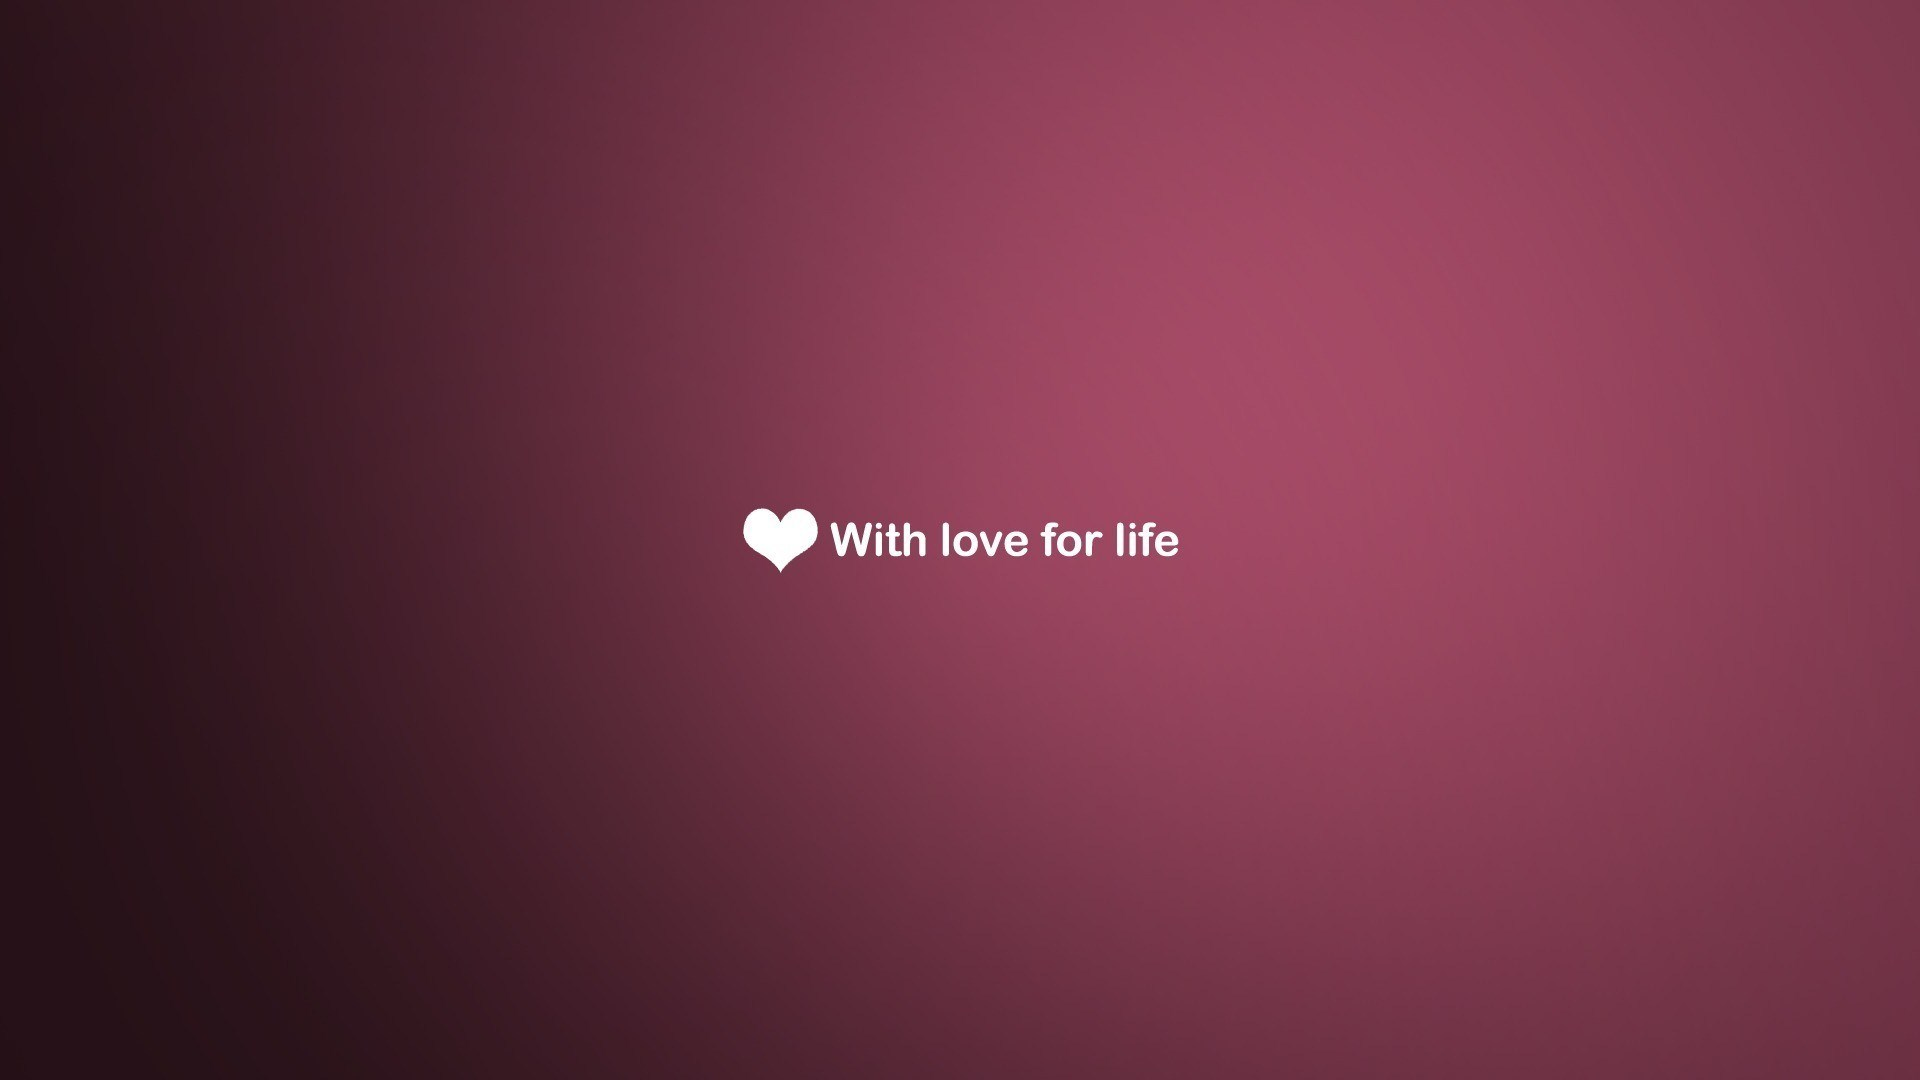 Love Life Wallpapers : Love Life - Wallpaper, High Definition, High Quality, Widescreen